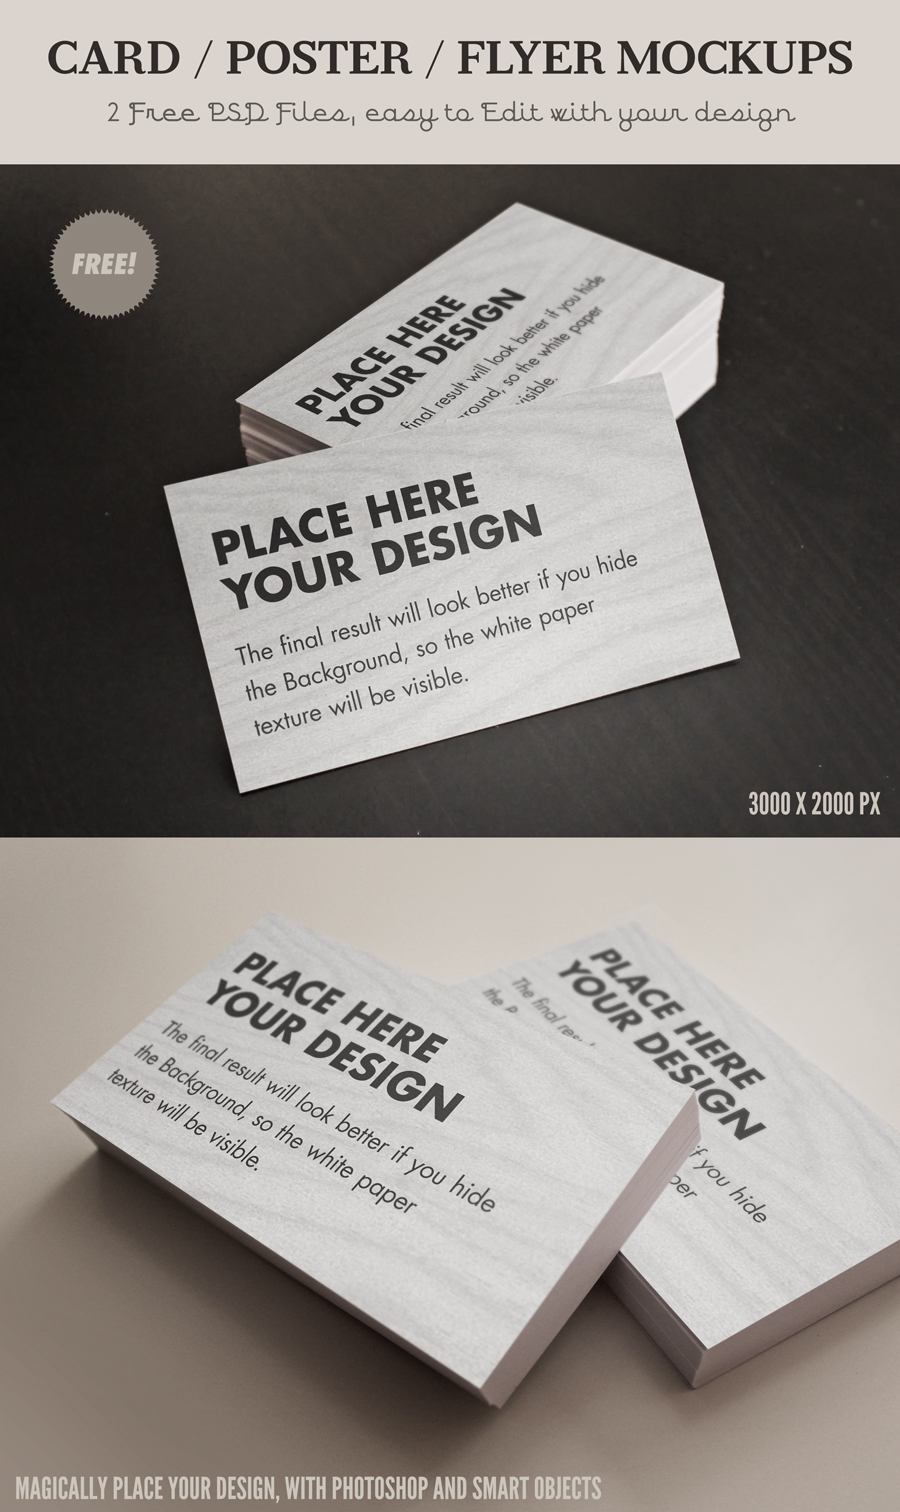 Free Card Poster Flyer MockUp PSD